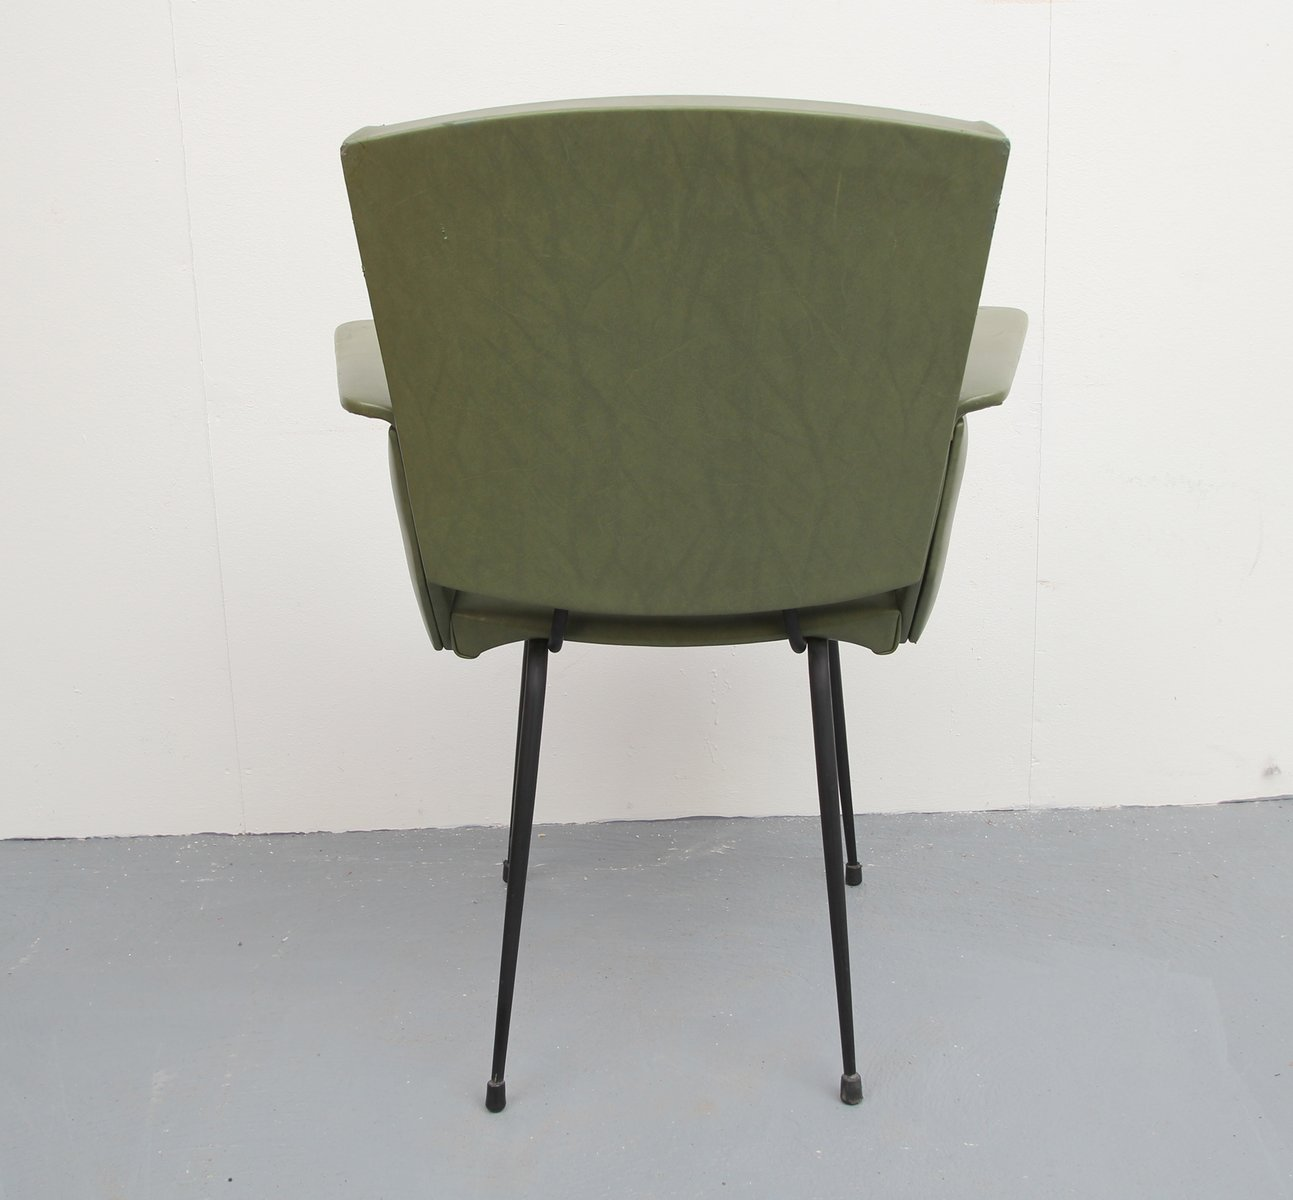 Olive Green Chair 1950s for sale at Pamono